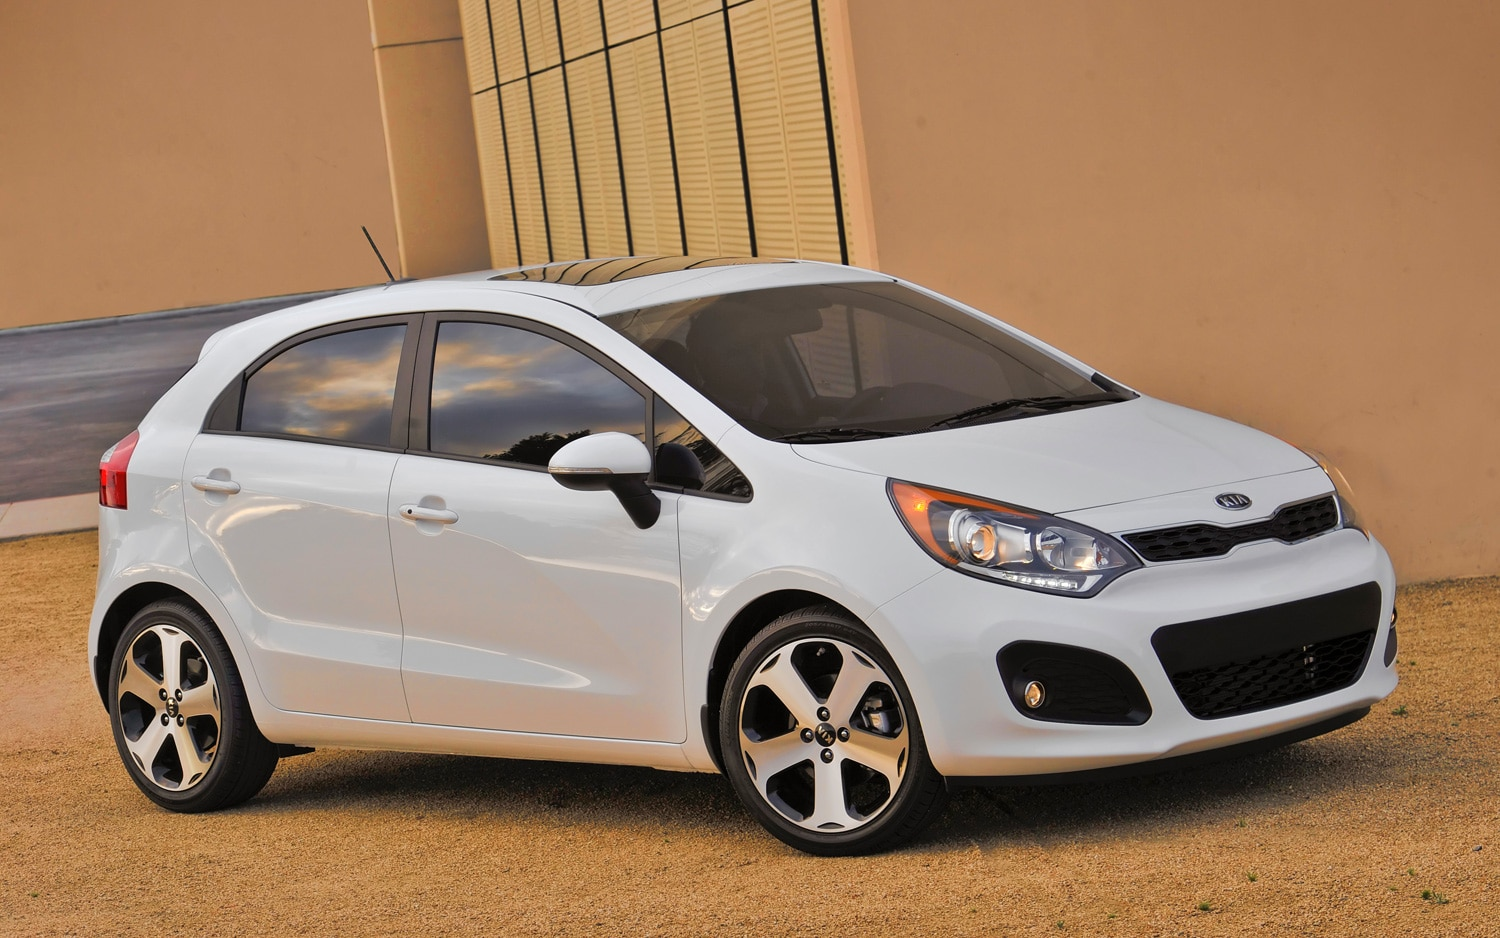 2013 Kia Rio SX Hatchback Front Three Quarter 21